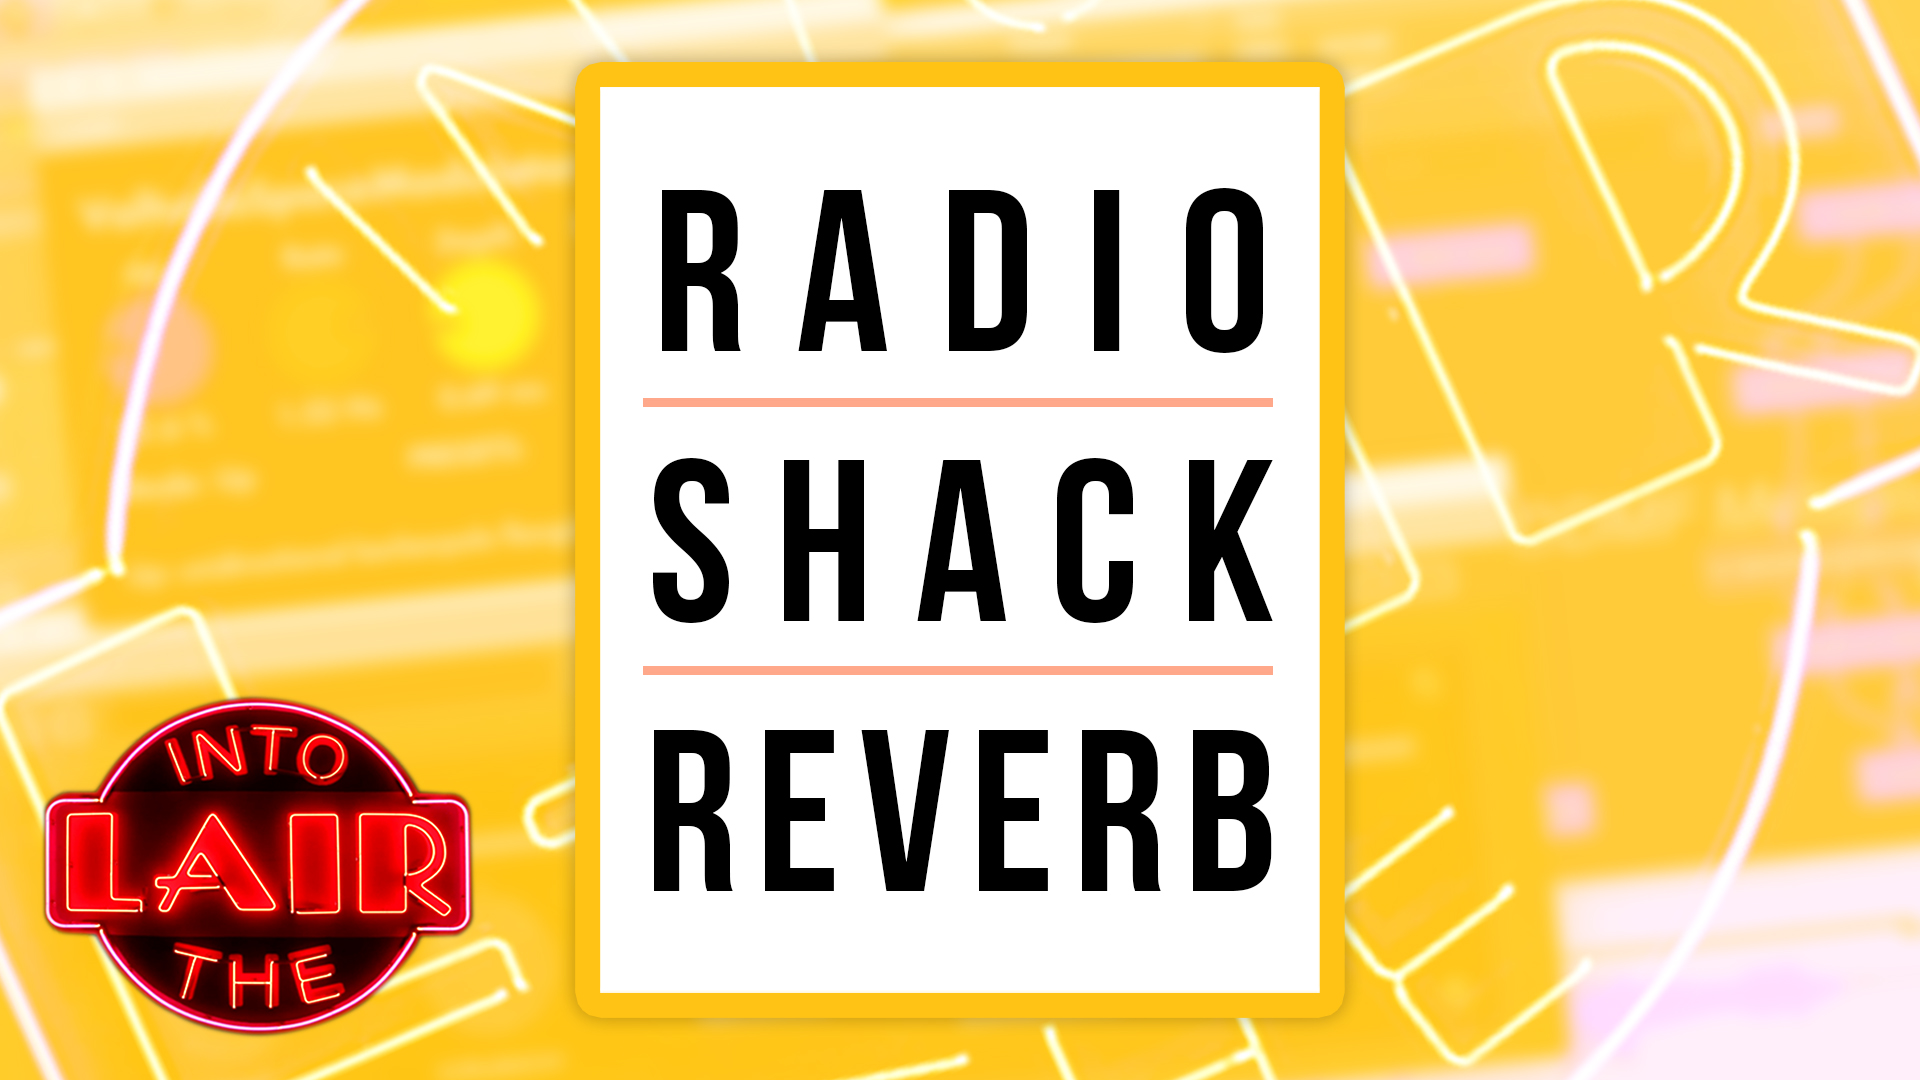 Radio Shack Reverb